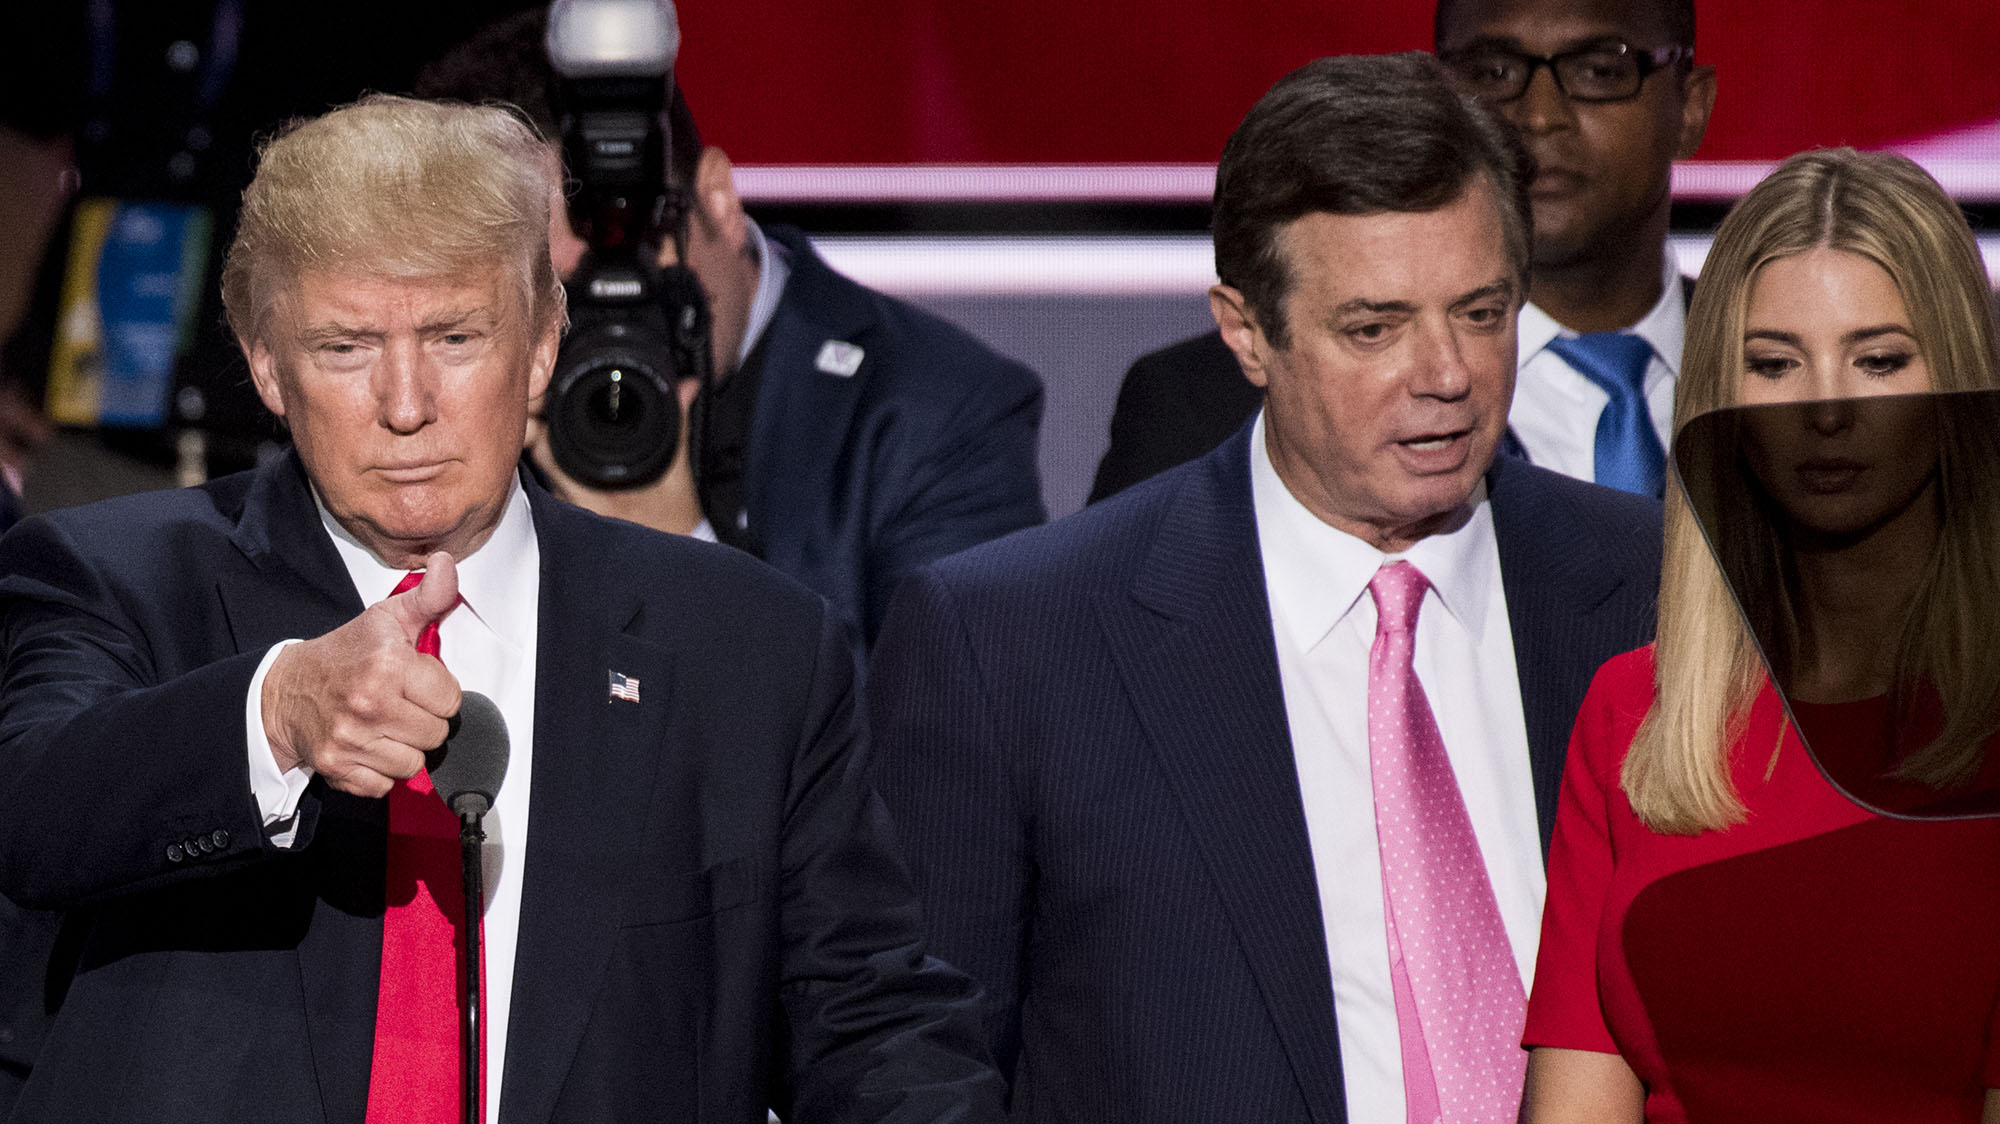 Manafort Wiretapped by Feds, Told to Expect Indictment